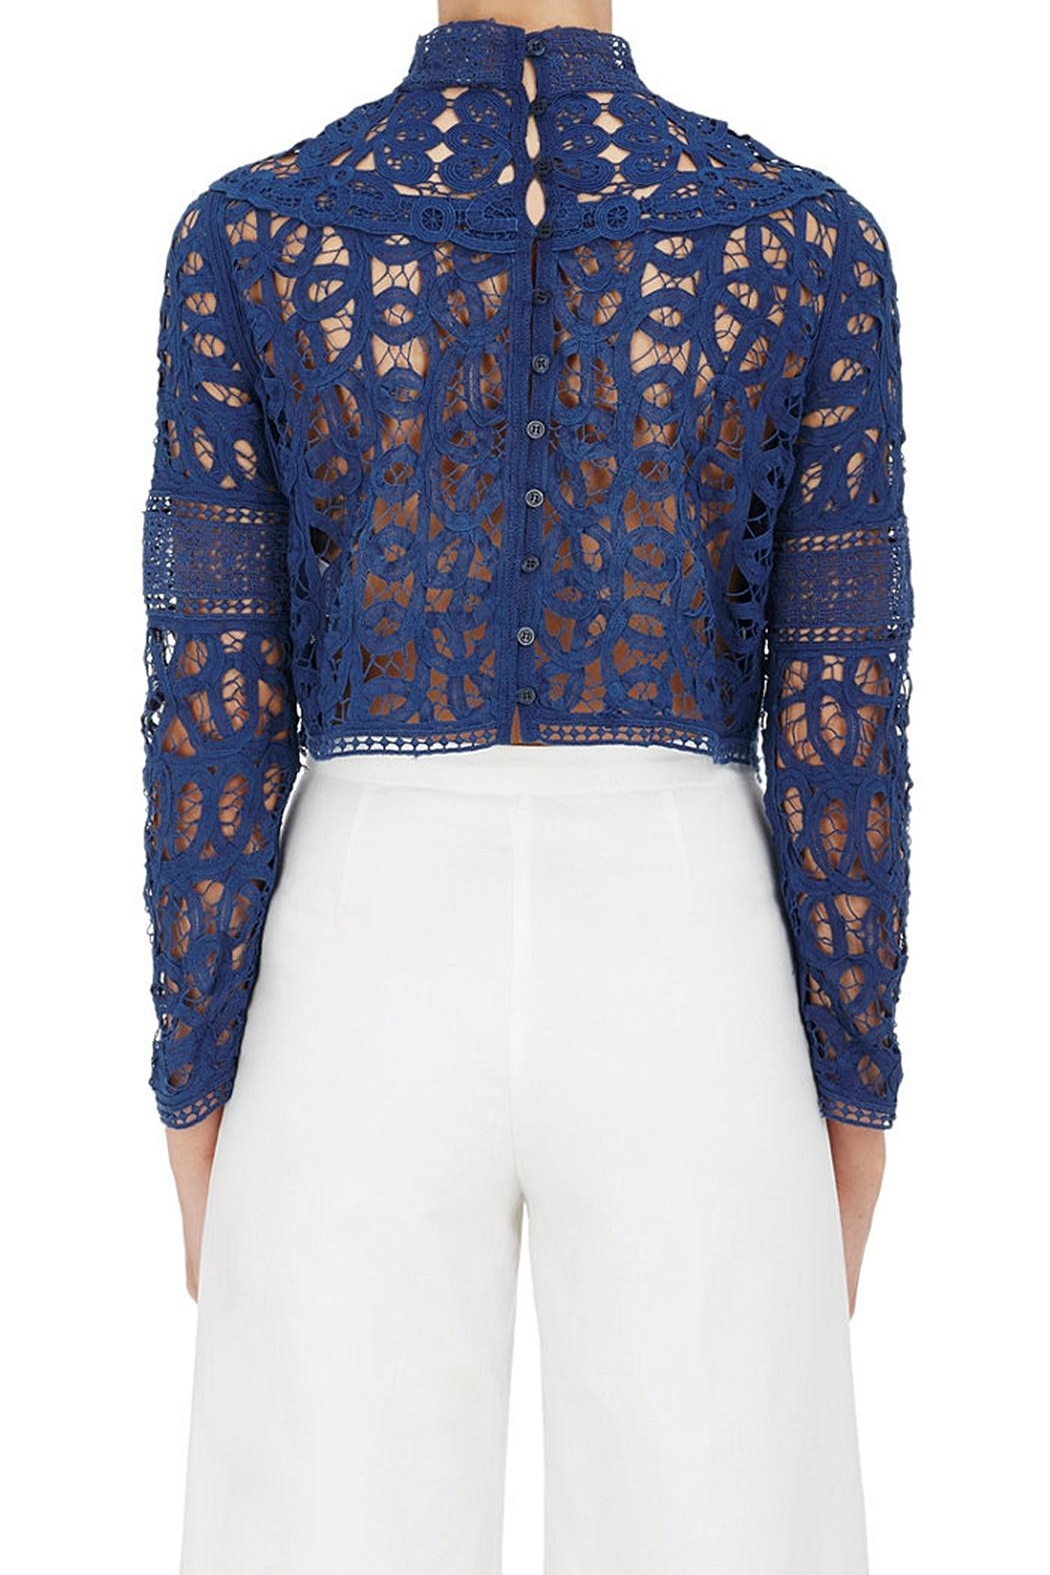 SEA Batternberg Lace Top - Front Full Image